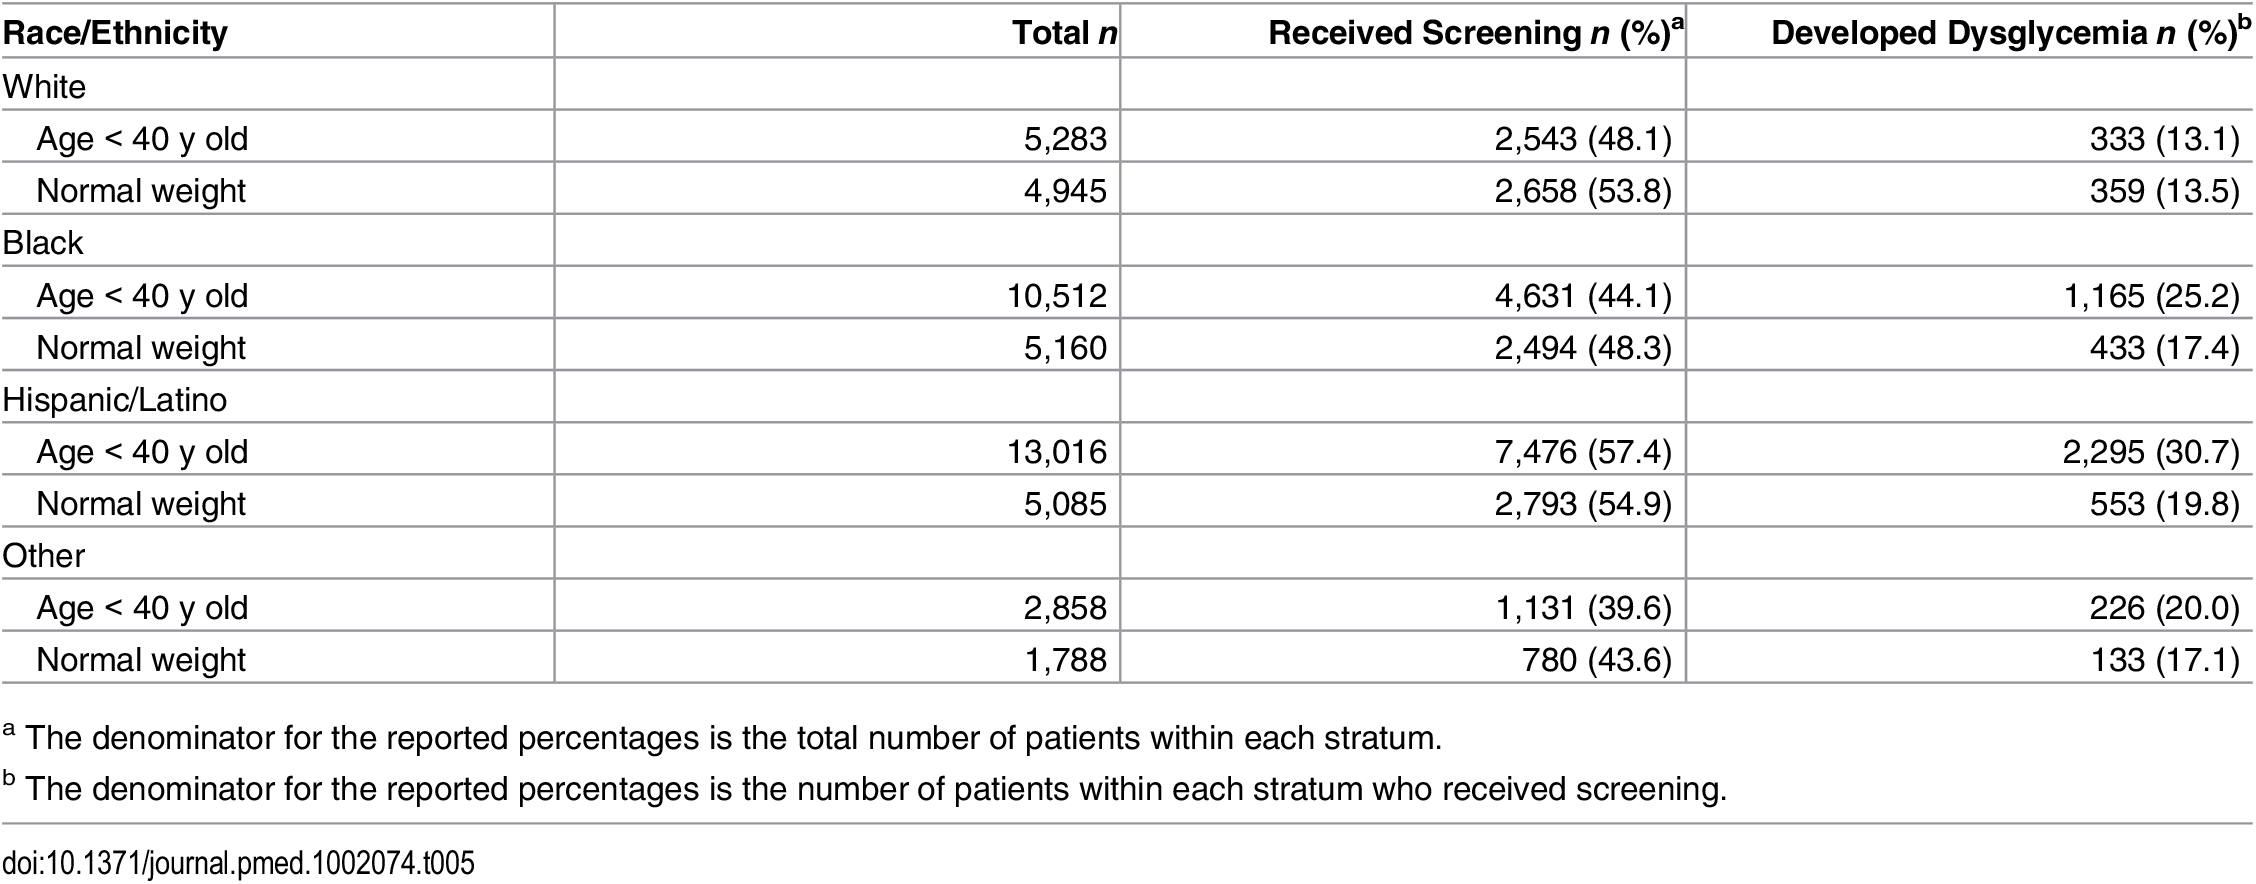 Receipt of screening and development of clinically detected dysglycemia by race/ethnicity, age < 40 y, and normal weight status.